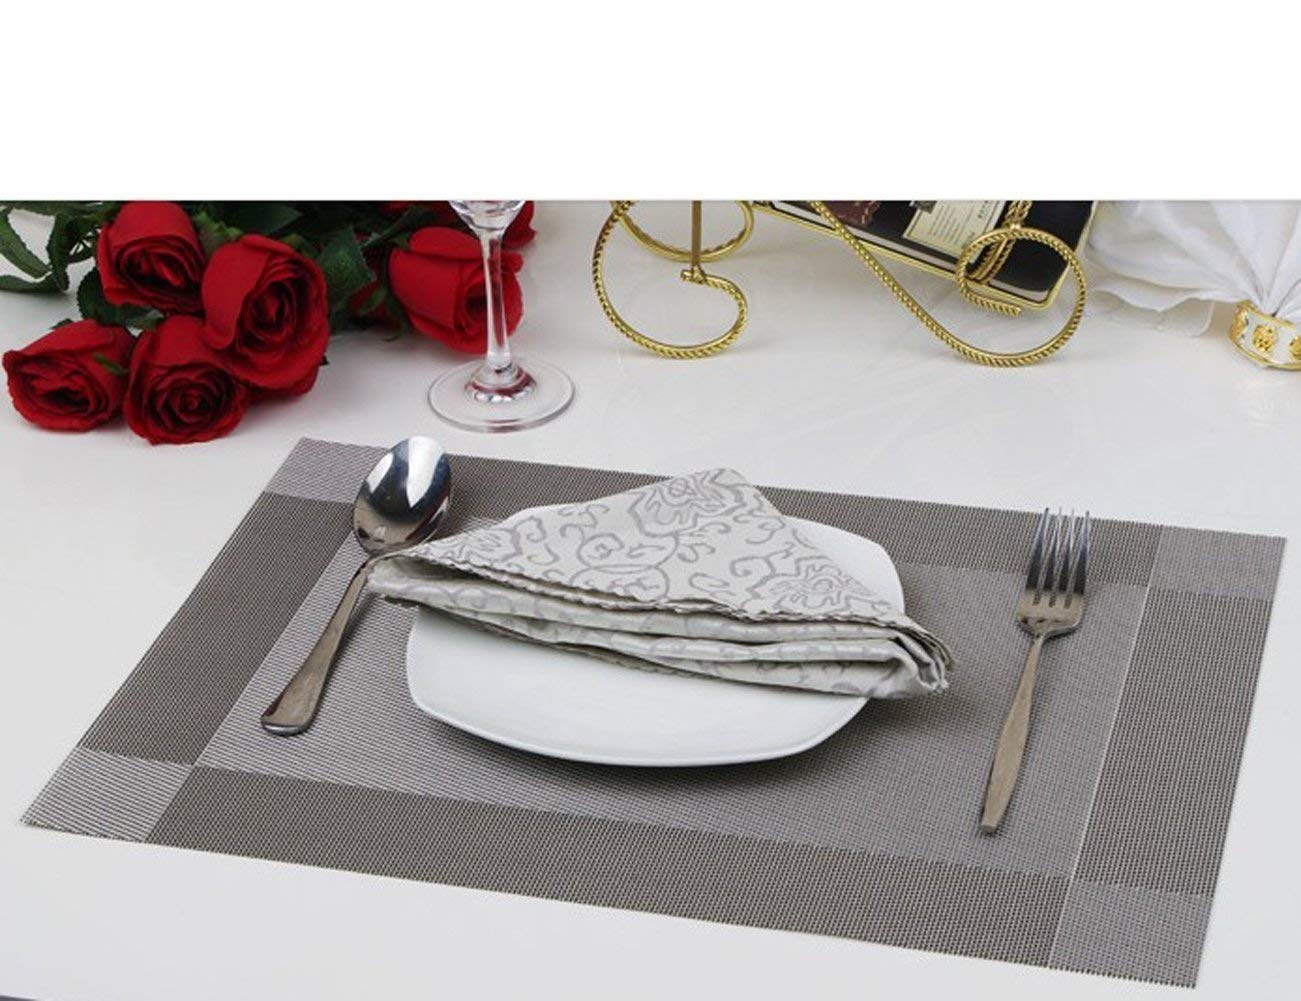 Kangkang @ Dining Room Placemats for Table Heat Insulation Anti-skid Stain-resistant Simple Style Eat Mat - Set of 4 (Silver+black) Chromatic Stripe Western-style Food Bowl Mats (Silver grey)